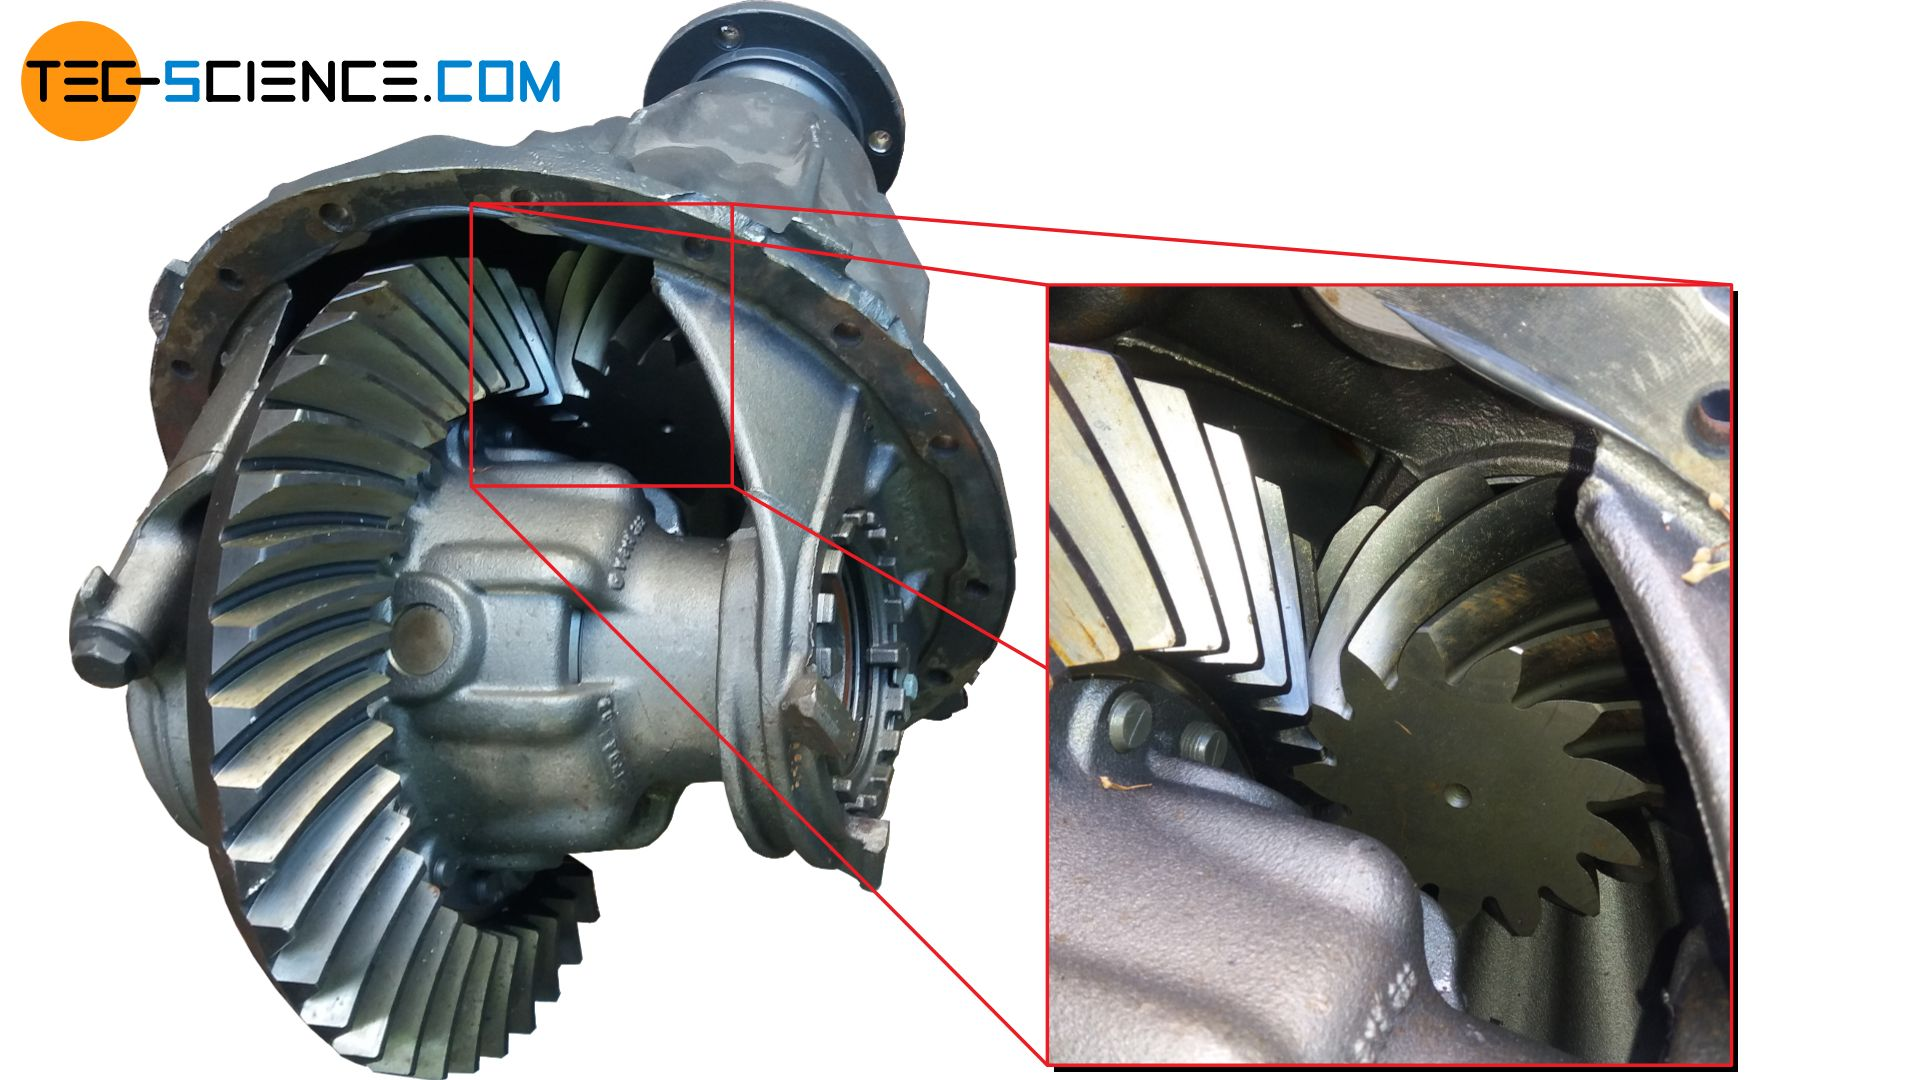 Differential gear of a truck